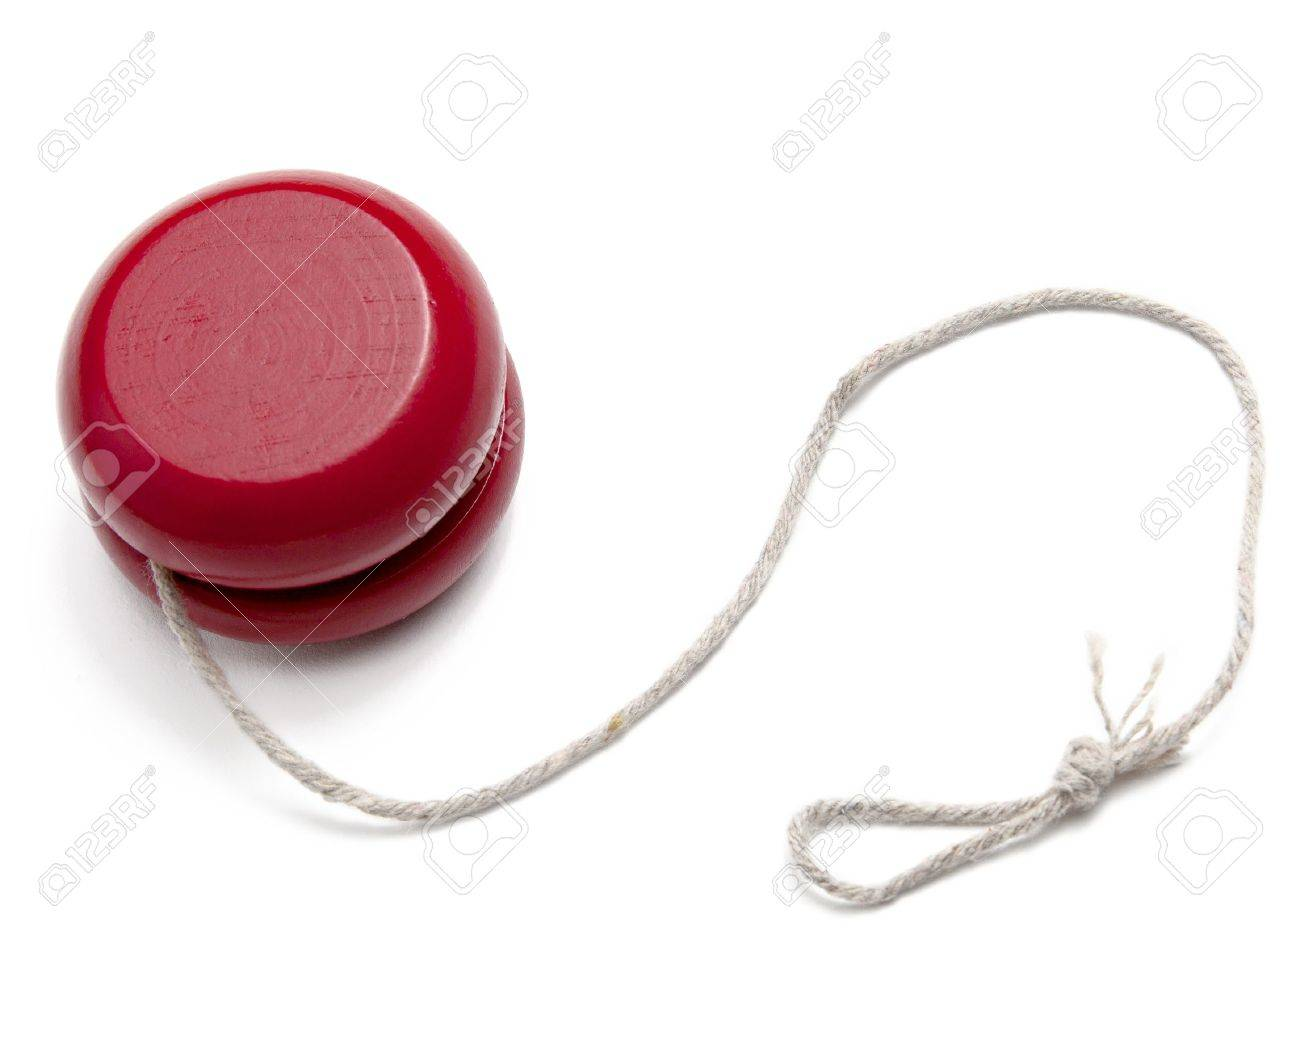 A Red Yo-yo Yoyo With String Isolated On White Stock Photo ... for Clipart Yoyo  155sfw